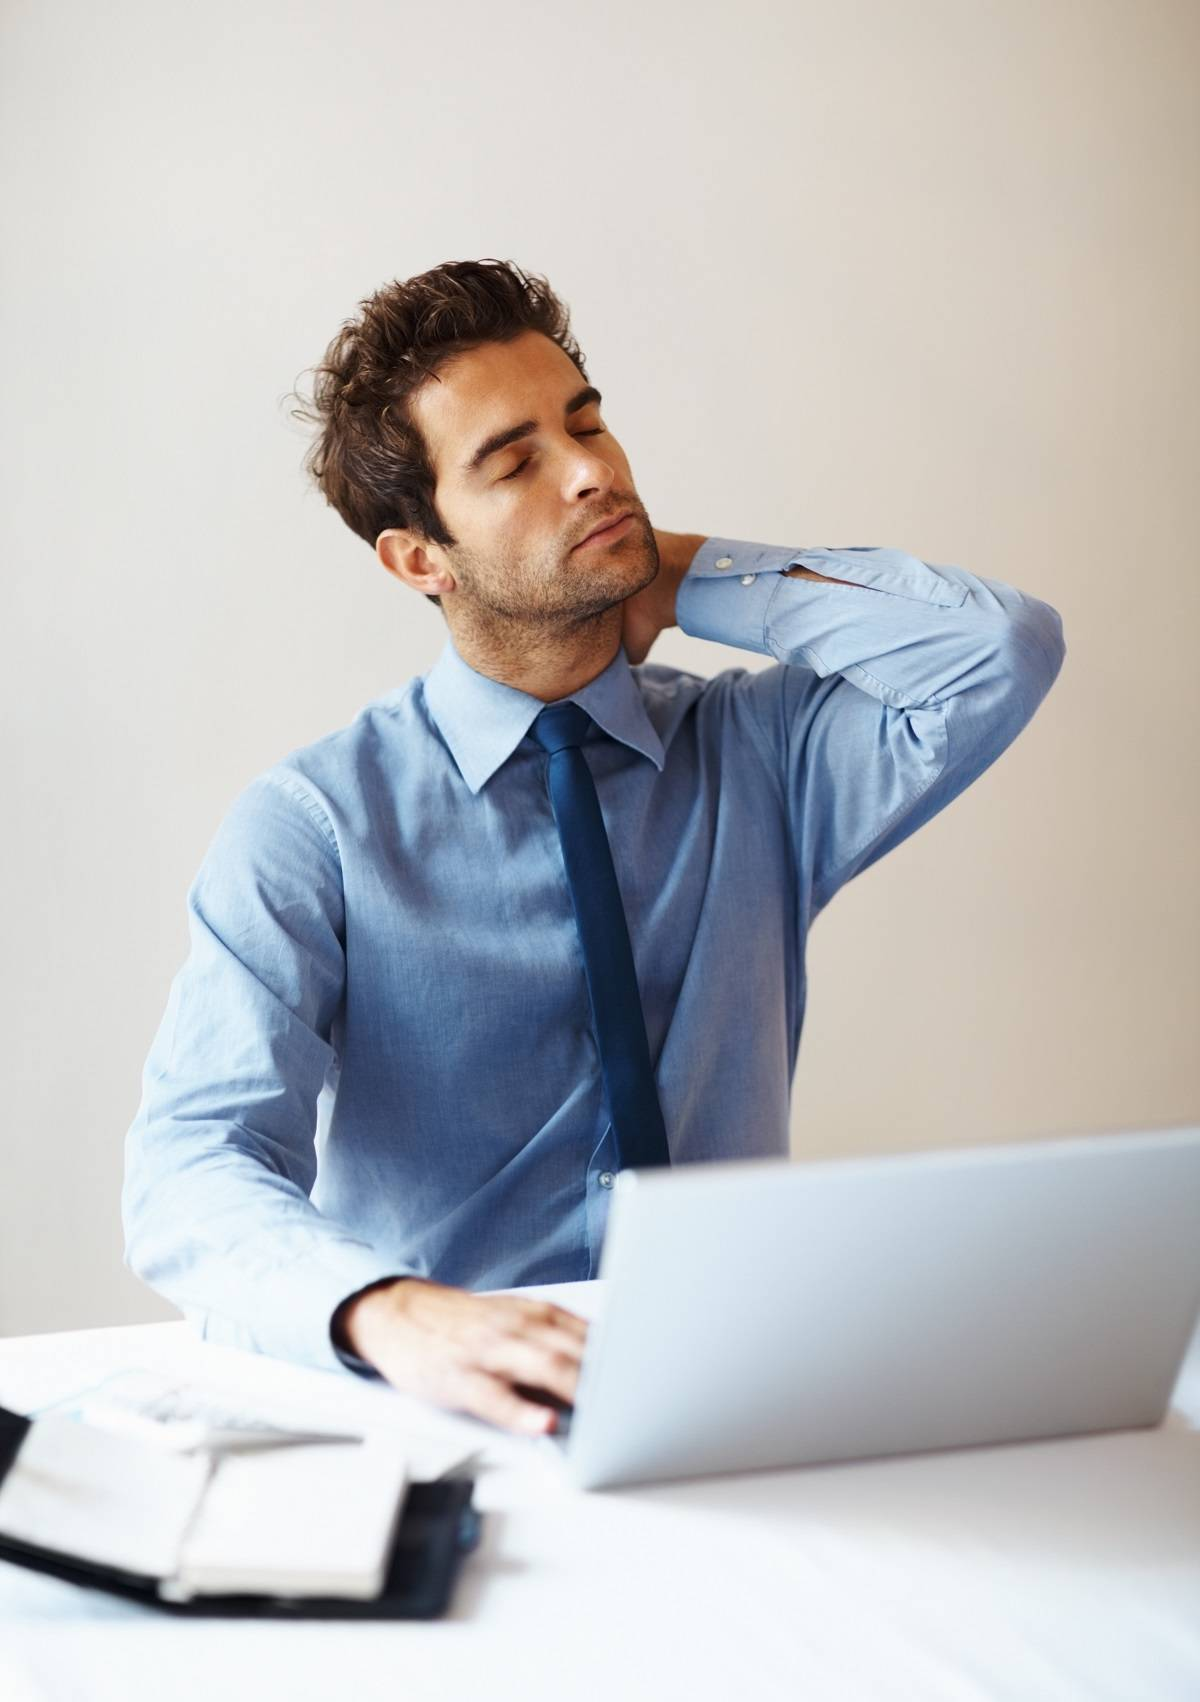 Back-Pain-At-Work-4-Ways-To-Ease-The-Pain Back Pain At Work? 4 Ways To Ease The Pain